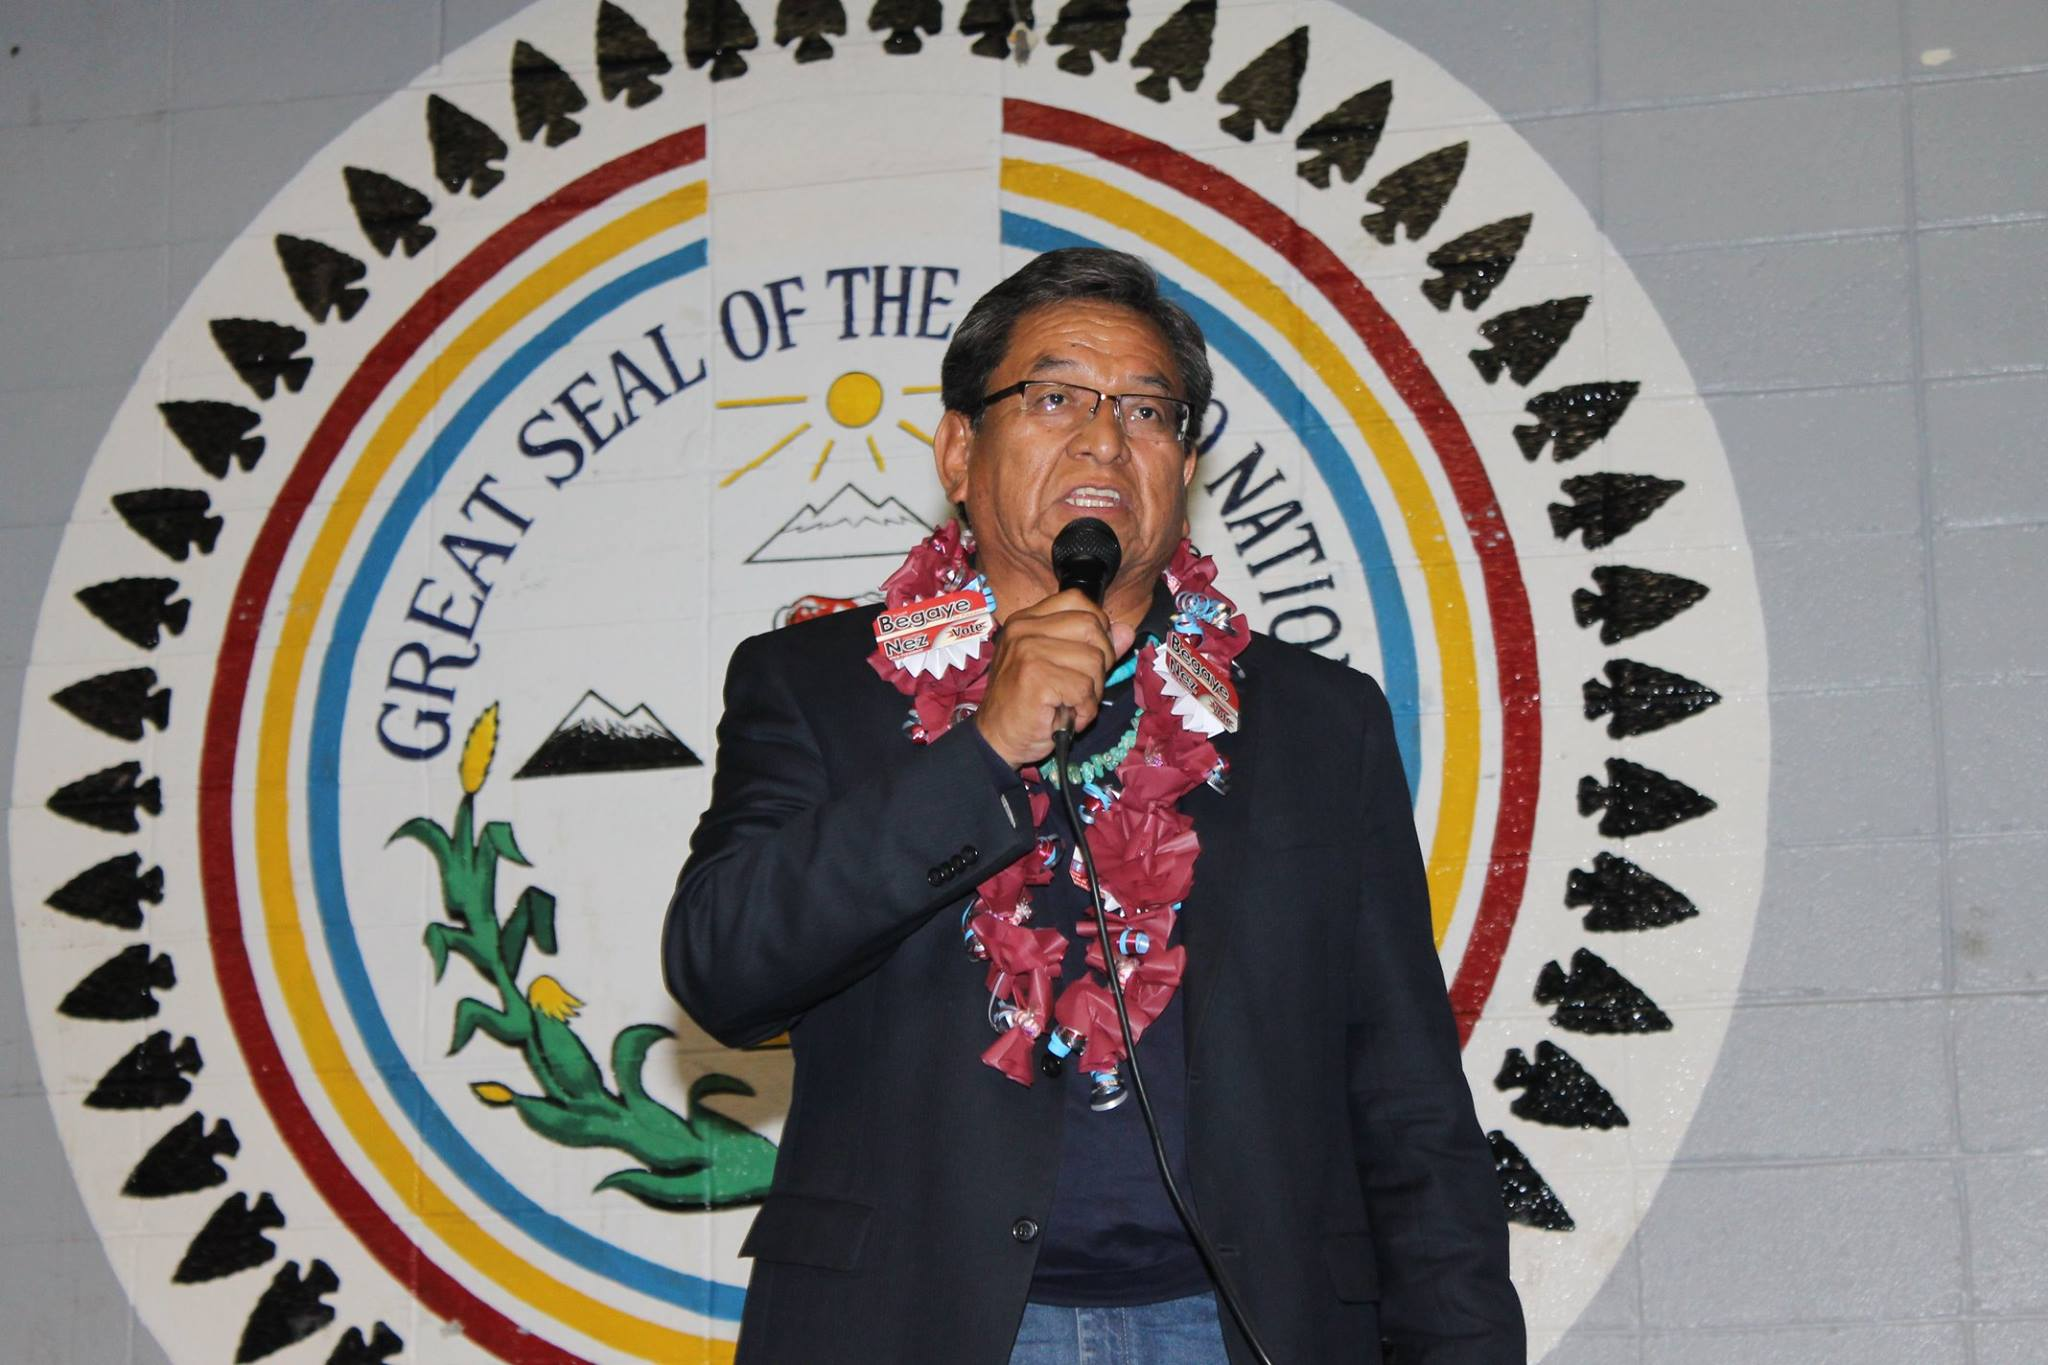 Navajo Nation voters choose Russell Begaye as next president